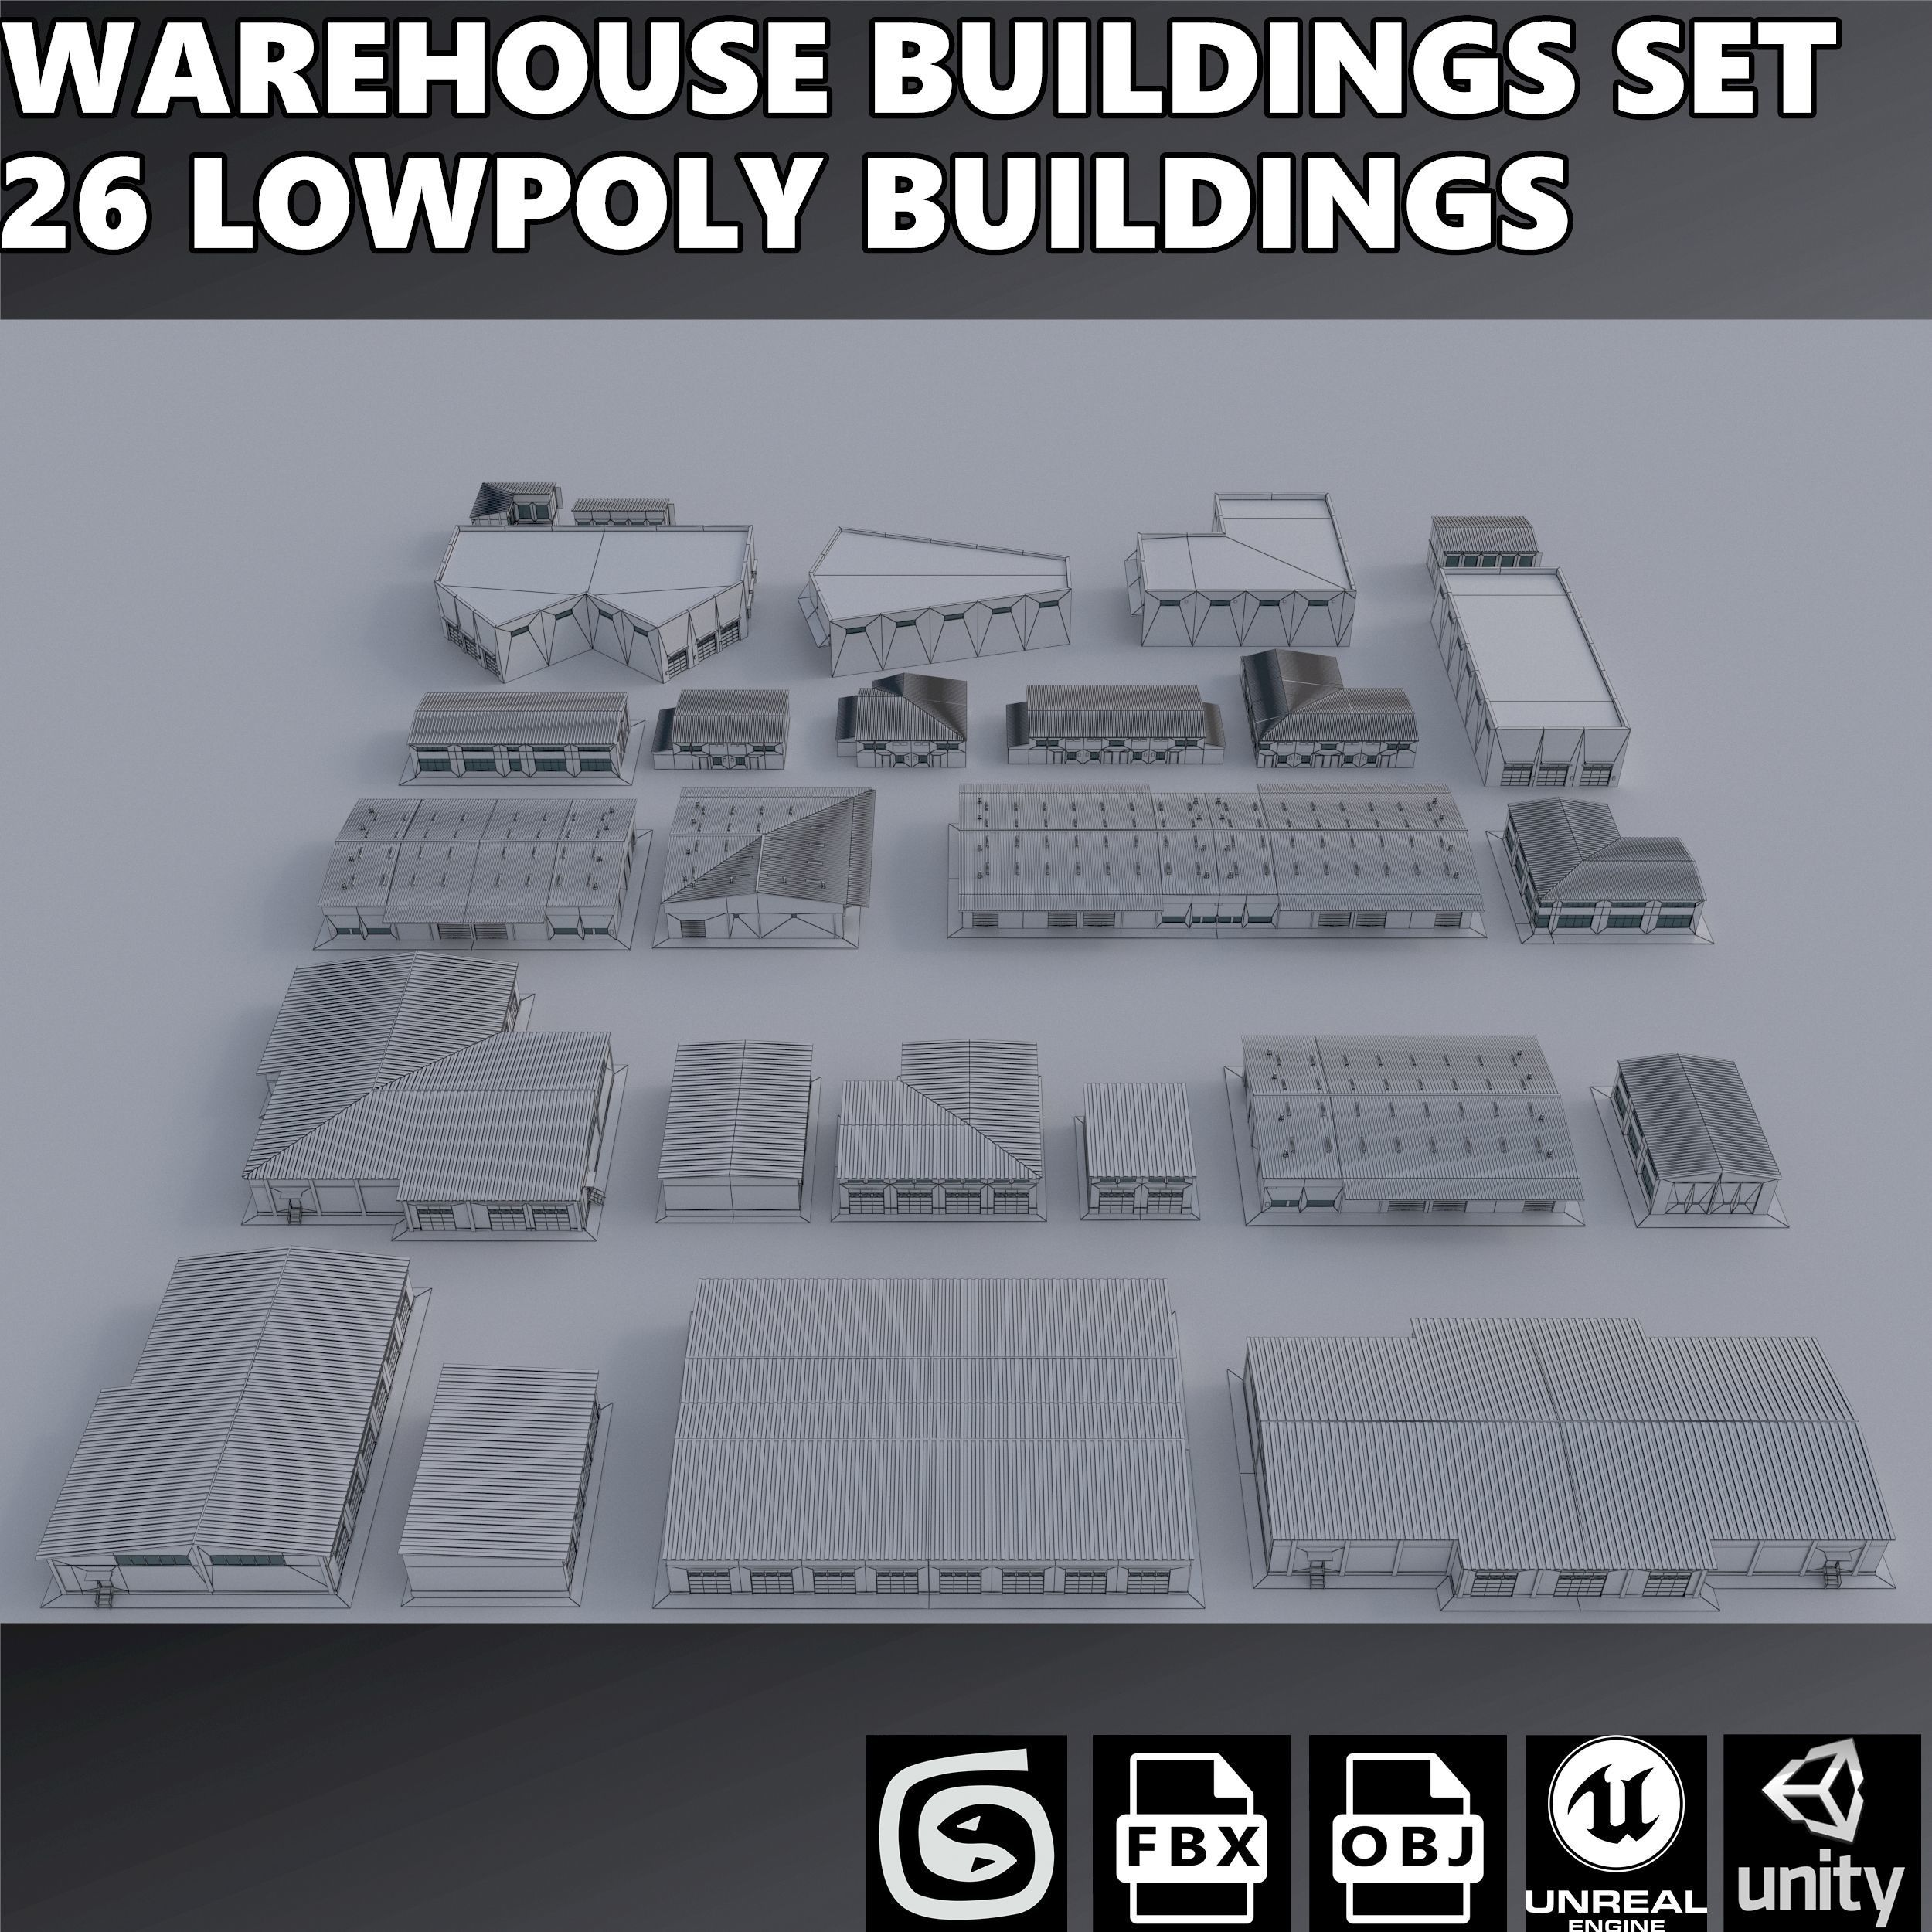 Warehouses Buildings Collection